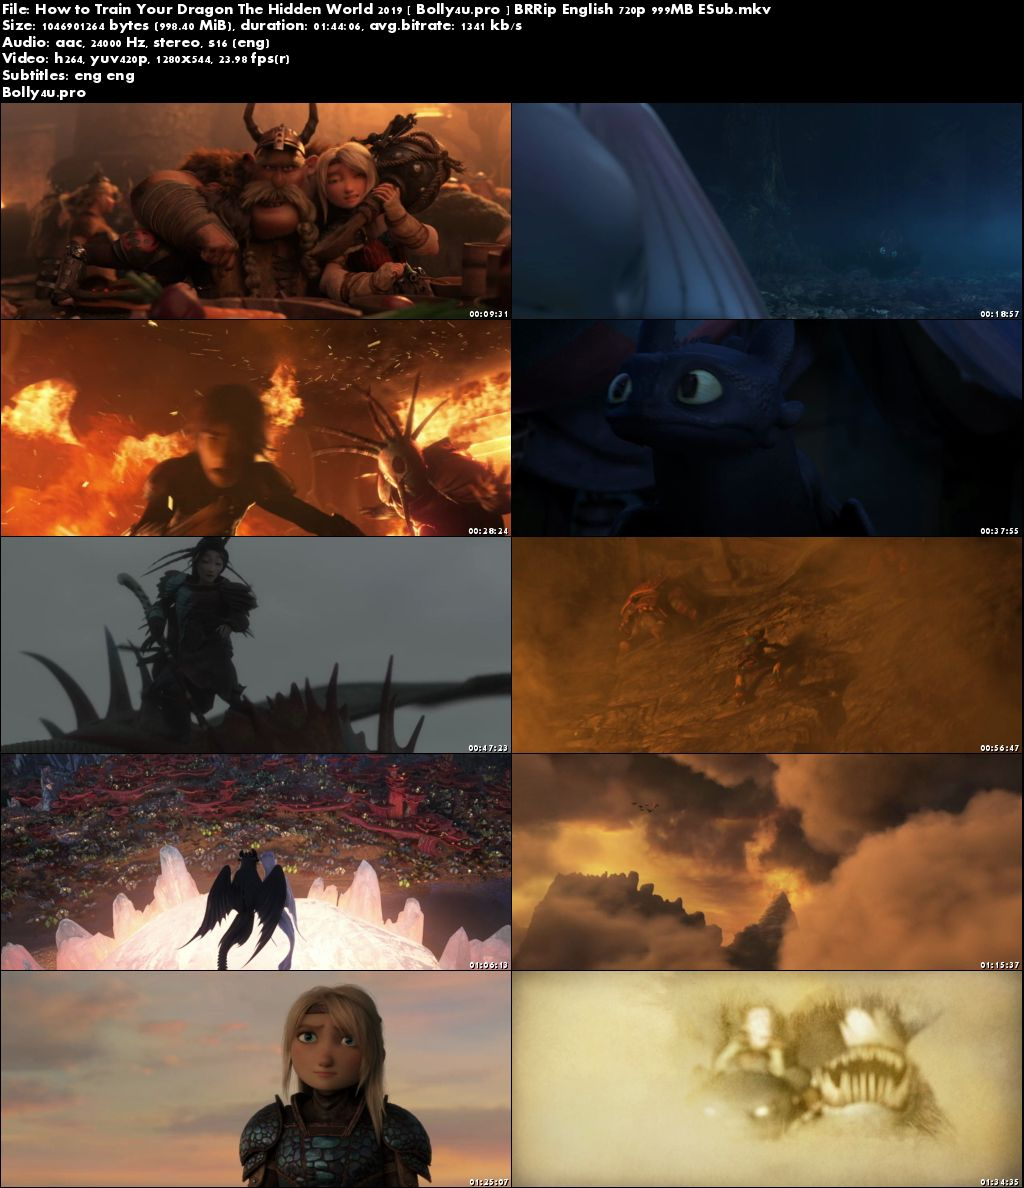 How to Train Your Dragon 2 2019 BRRip 999MB English 720p ESub Download